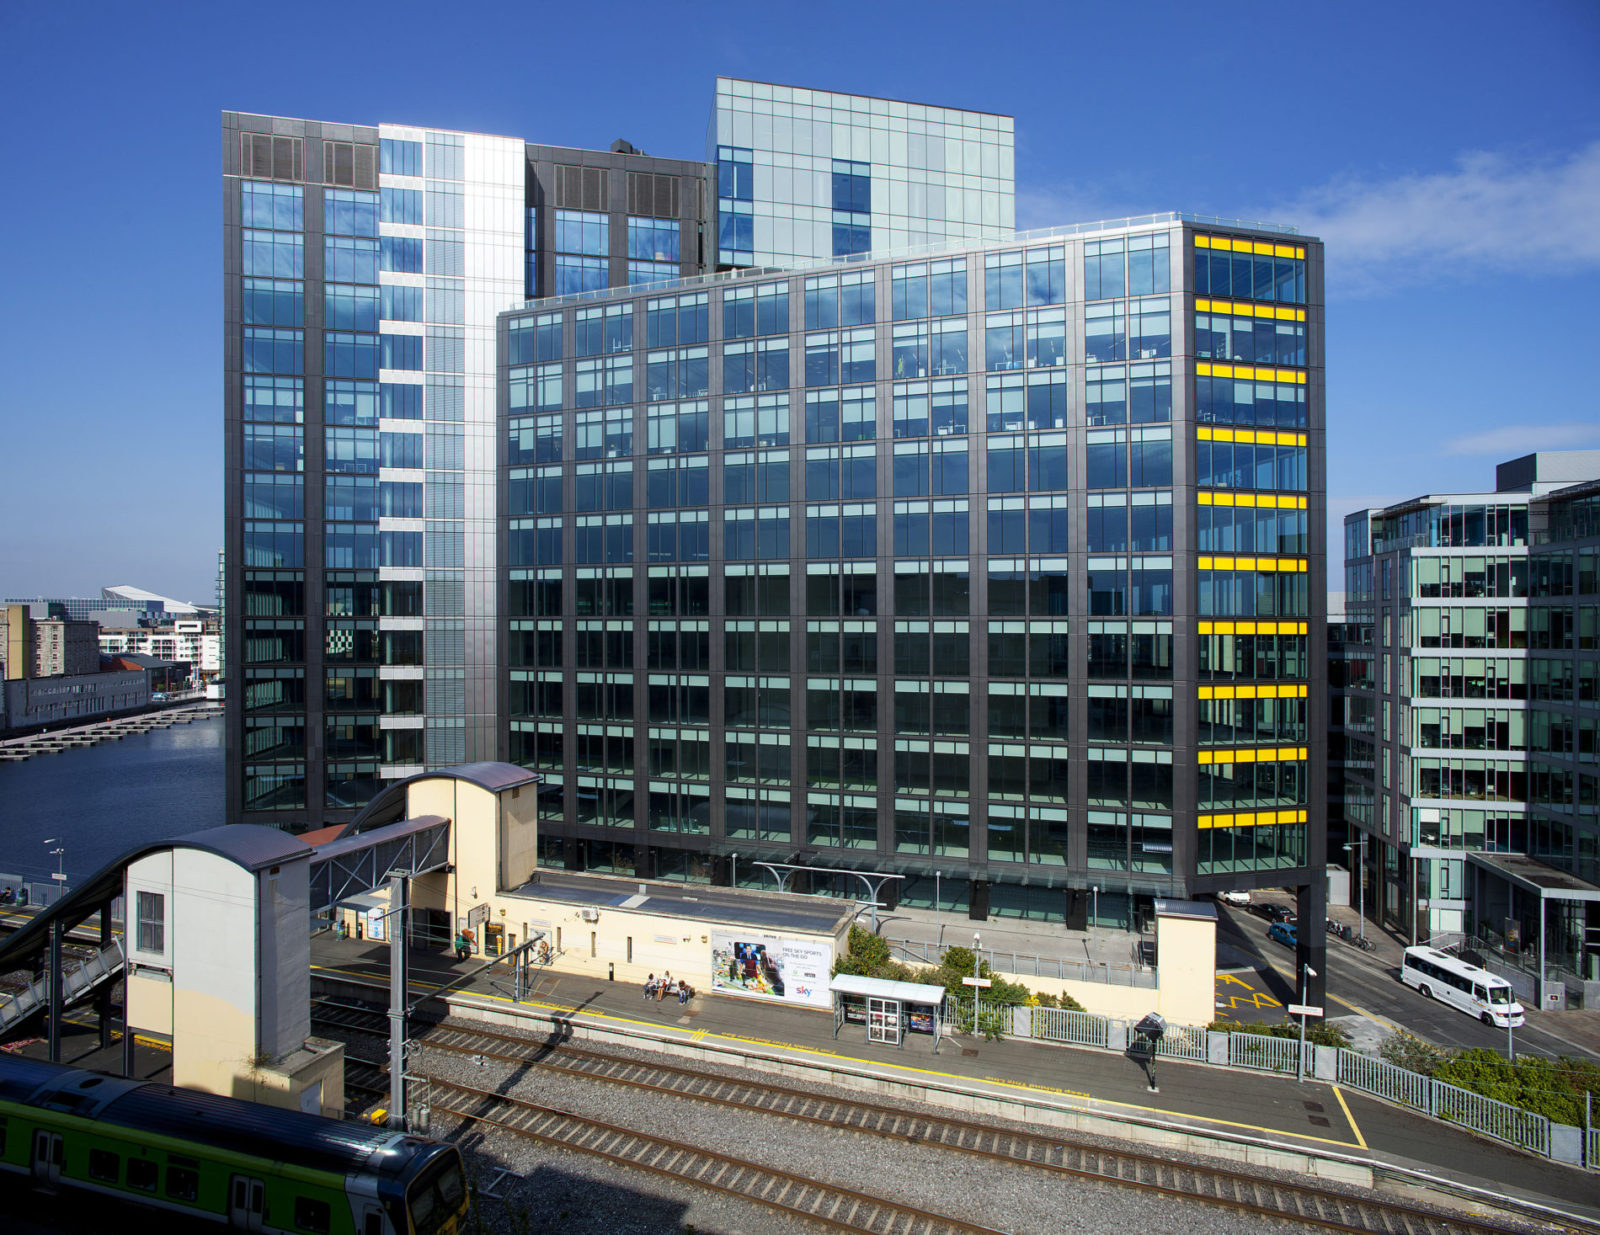 High End Commercial Offices: Google European HQ